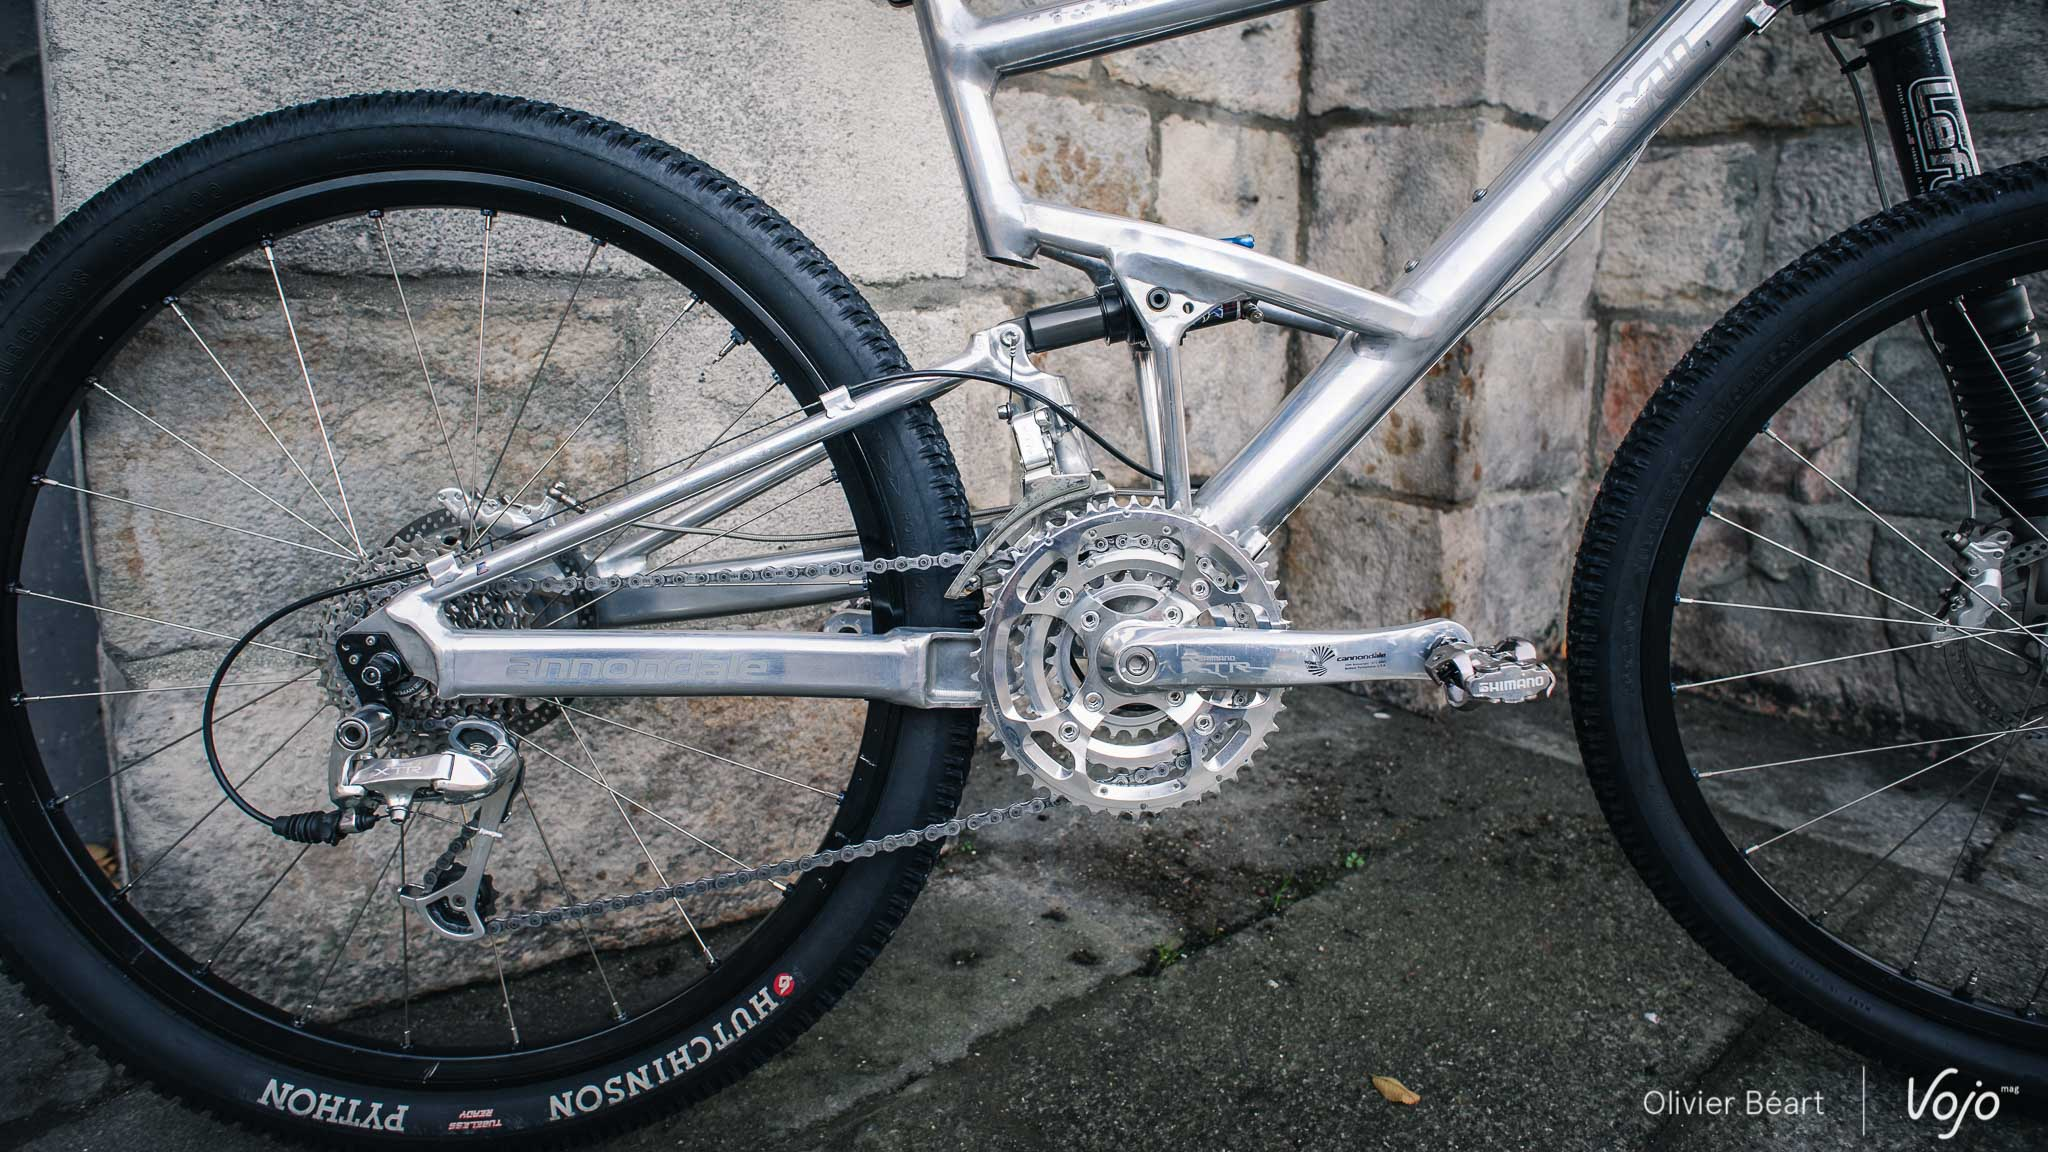 Cannondale_Jekyll_GoodBoy_Copyright_OBeart_VojoMag-1-6